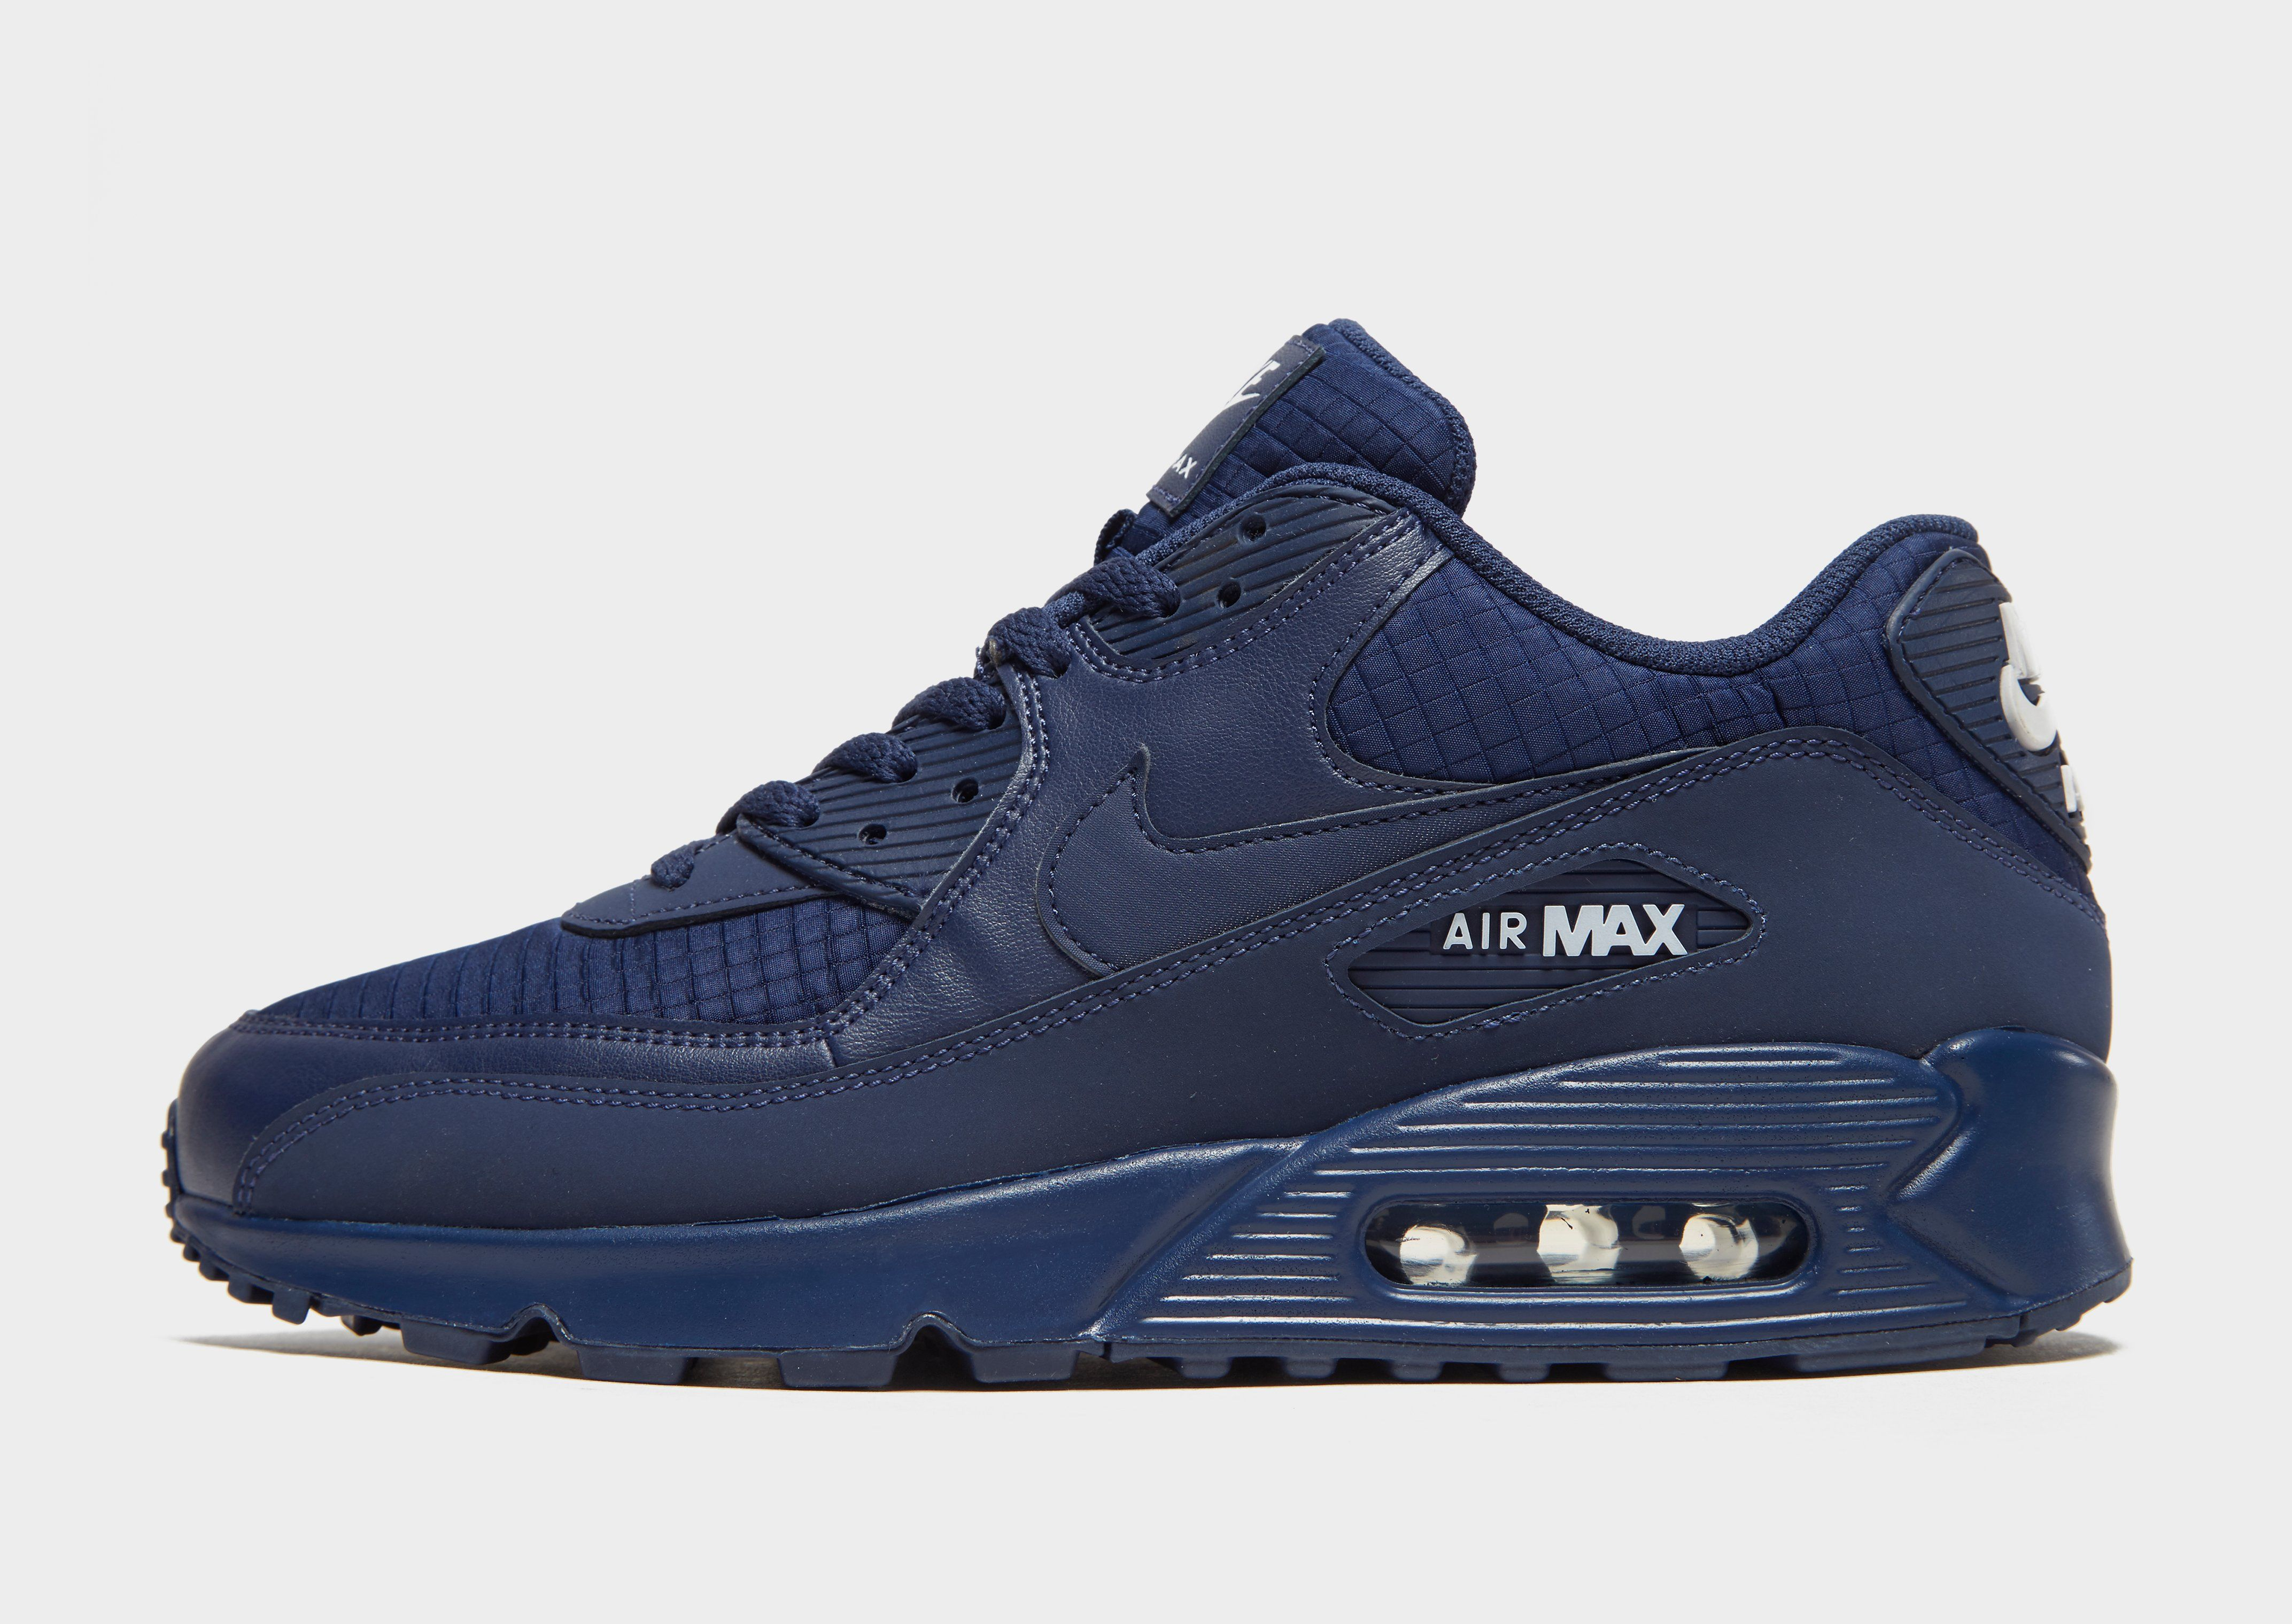 huge selection of c4f7d 599c3 Nike Air Max 90 Essential   JD Sports Ireland